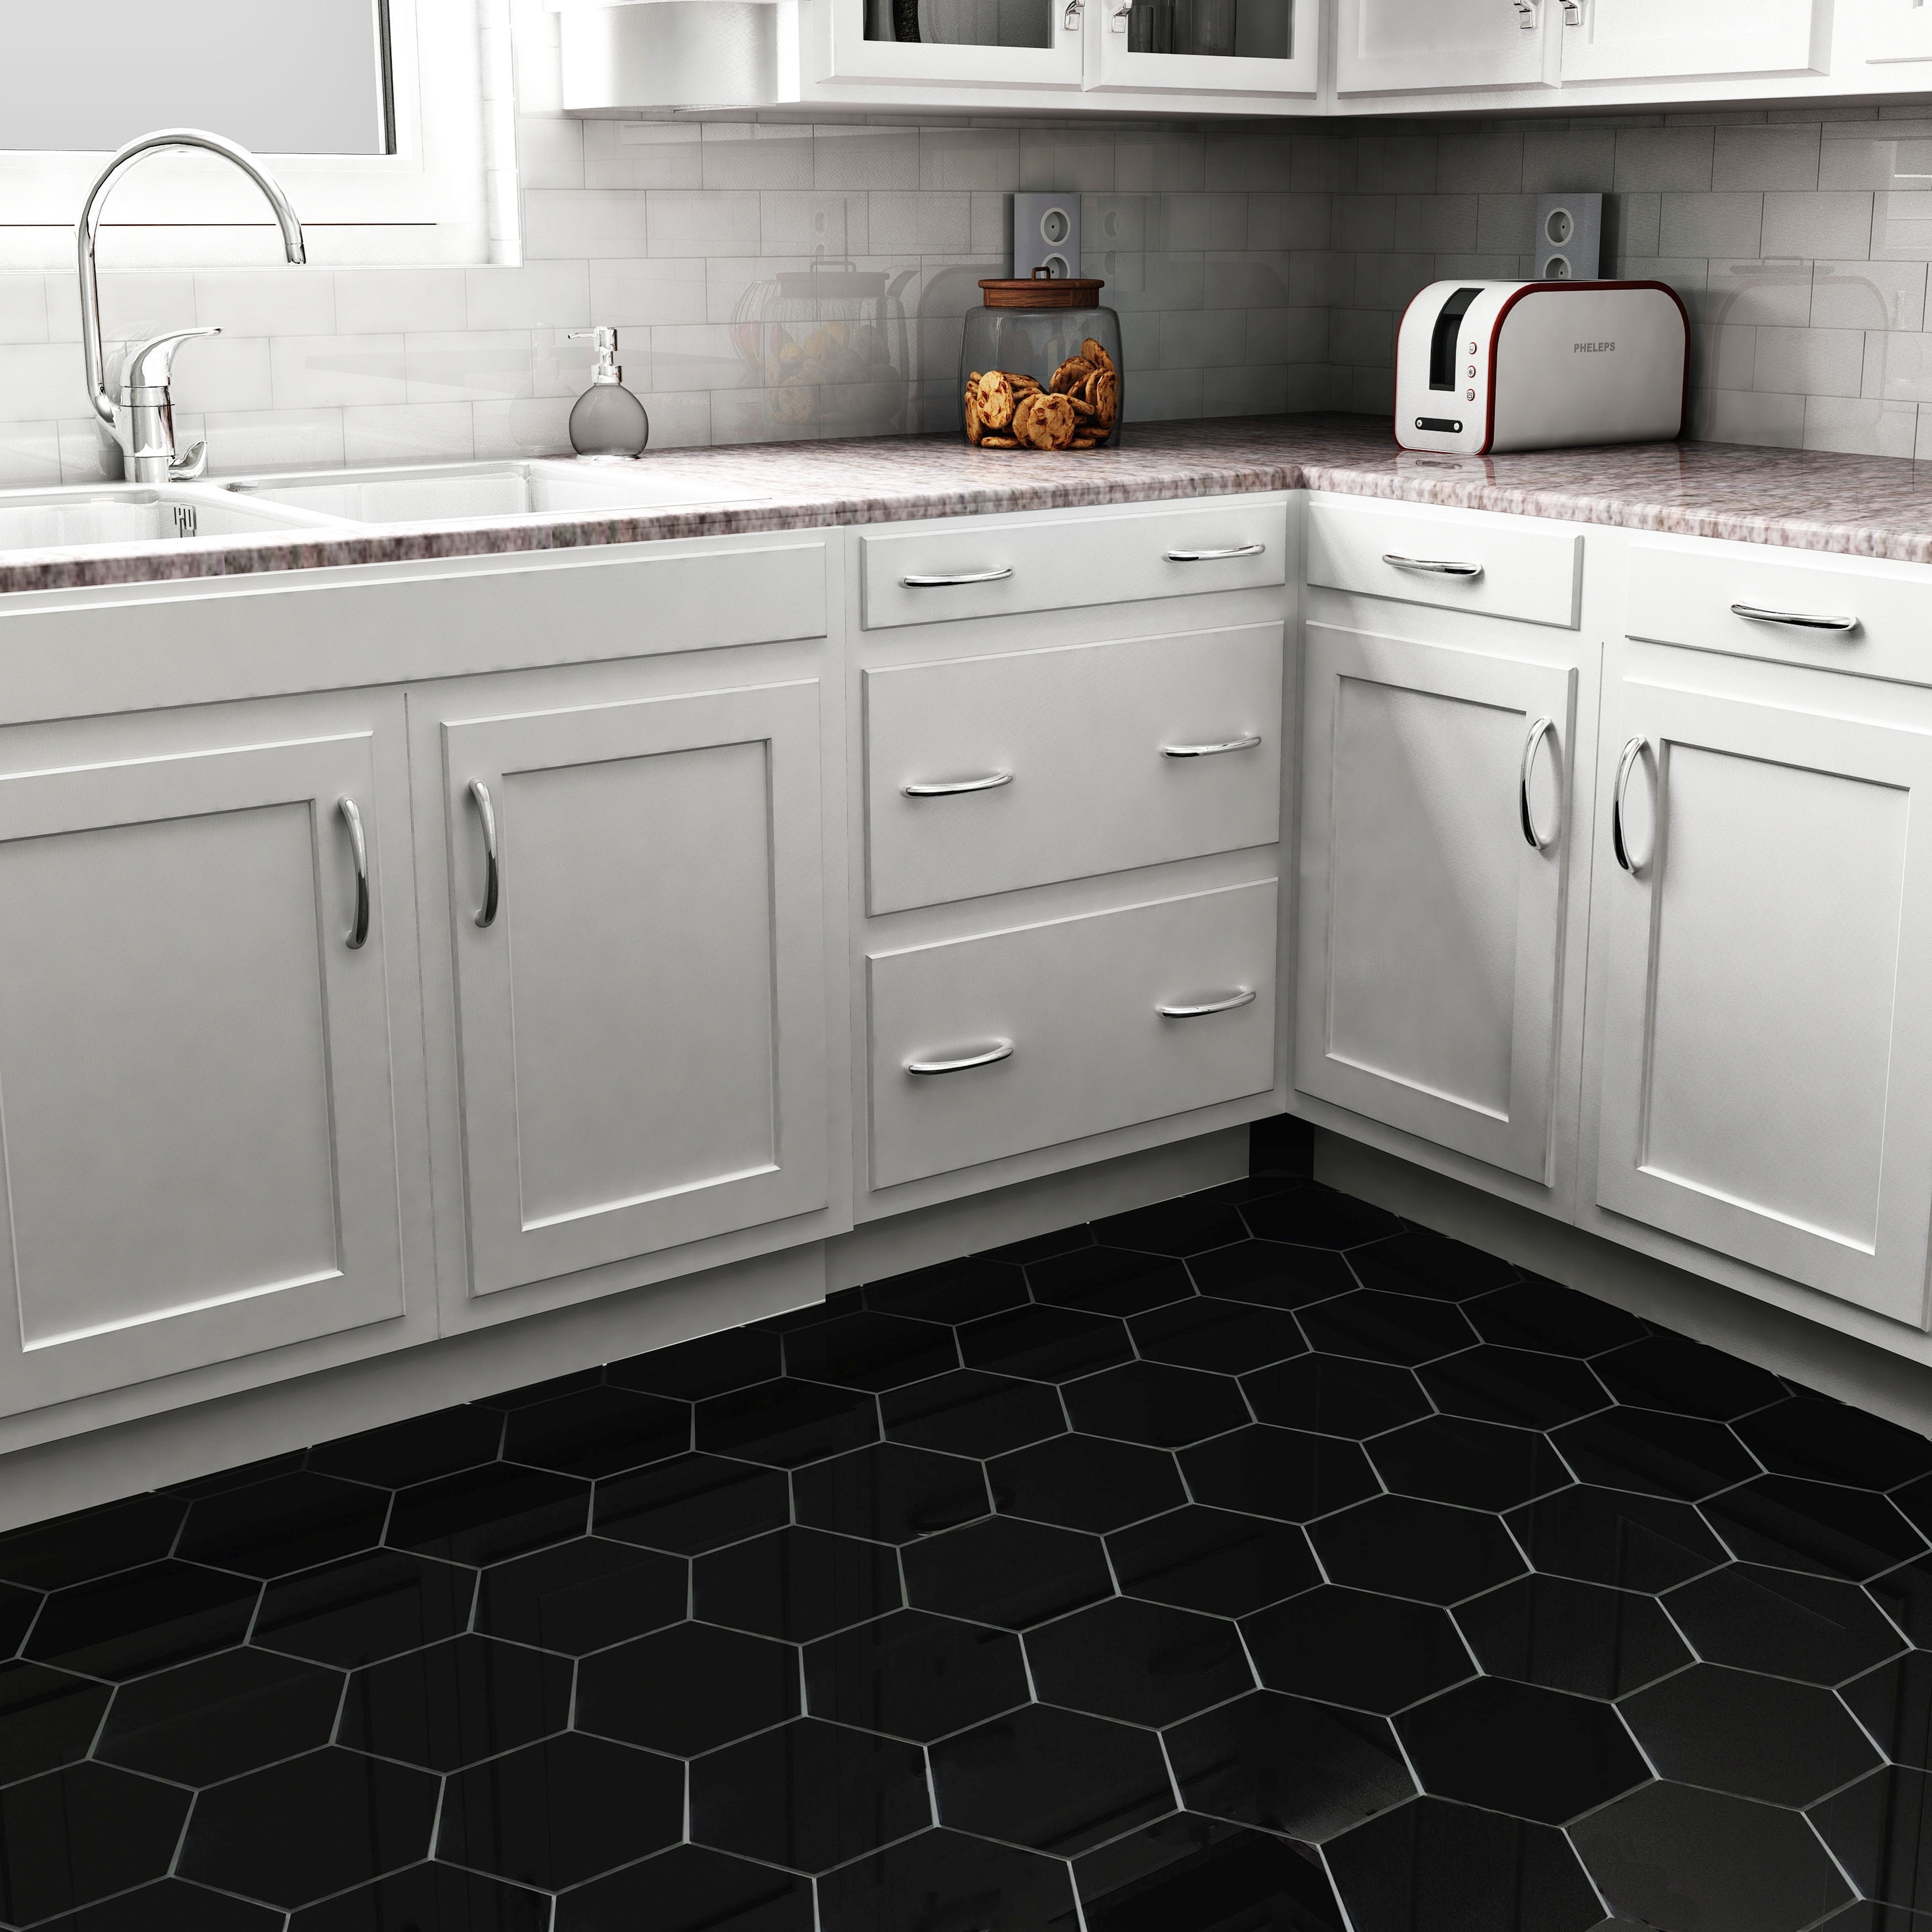 Somertile 7x8 inch hextile matte black porcelain floor and wall somertile 7x8 inch hextile matte black porcelain floor and wall tile case of 14 free shipping on orders over 45 overstock 15742538 dailygadgetfo Gallery